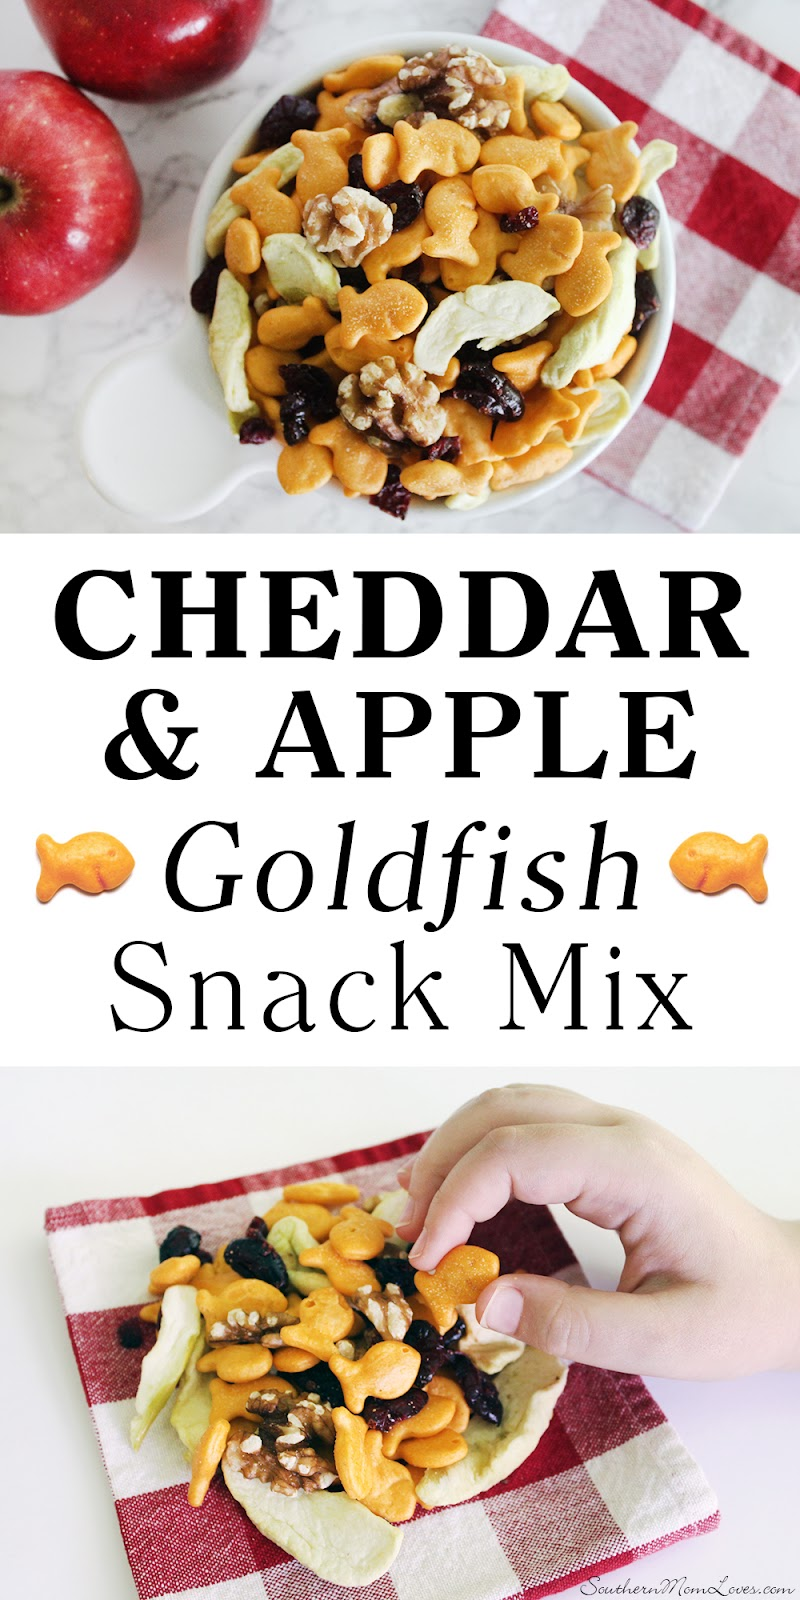 Goldfish-snack-mix-Pinterest.jpg